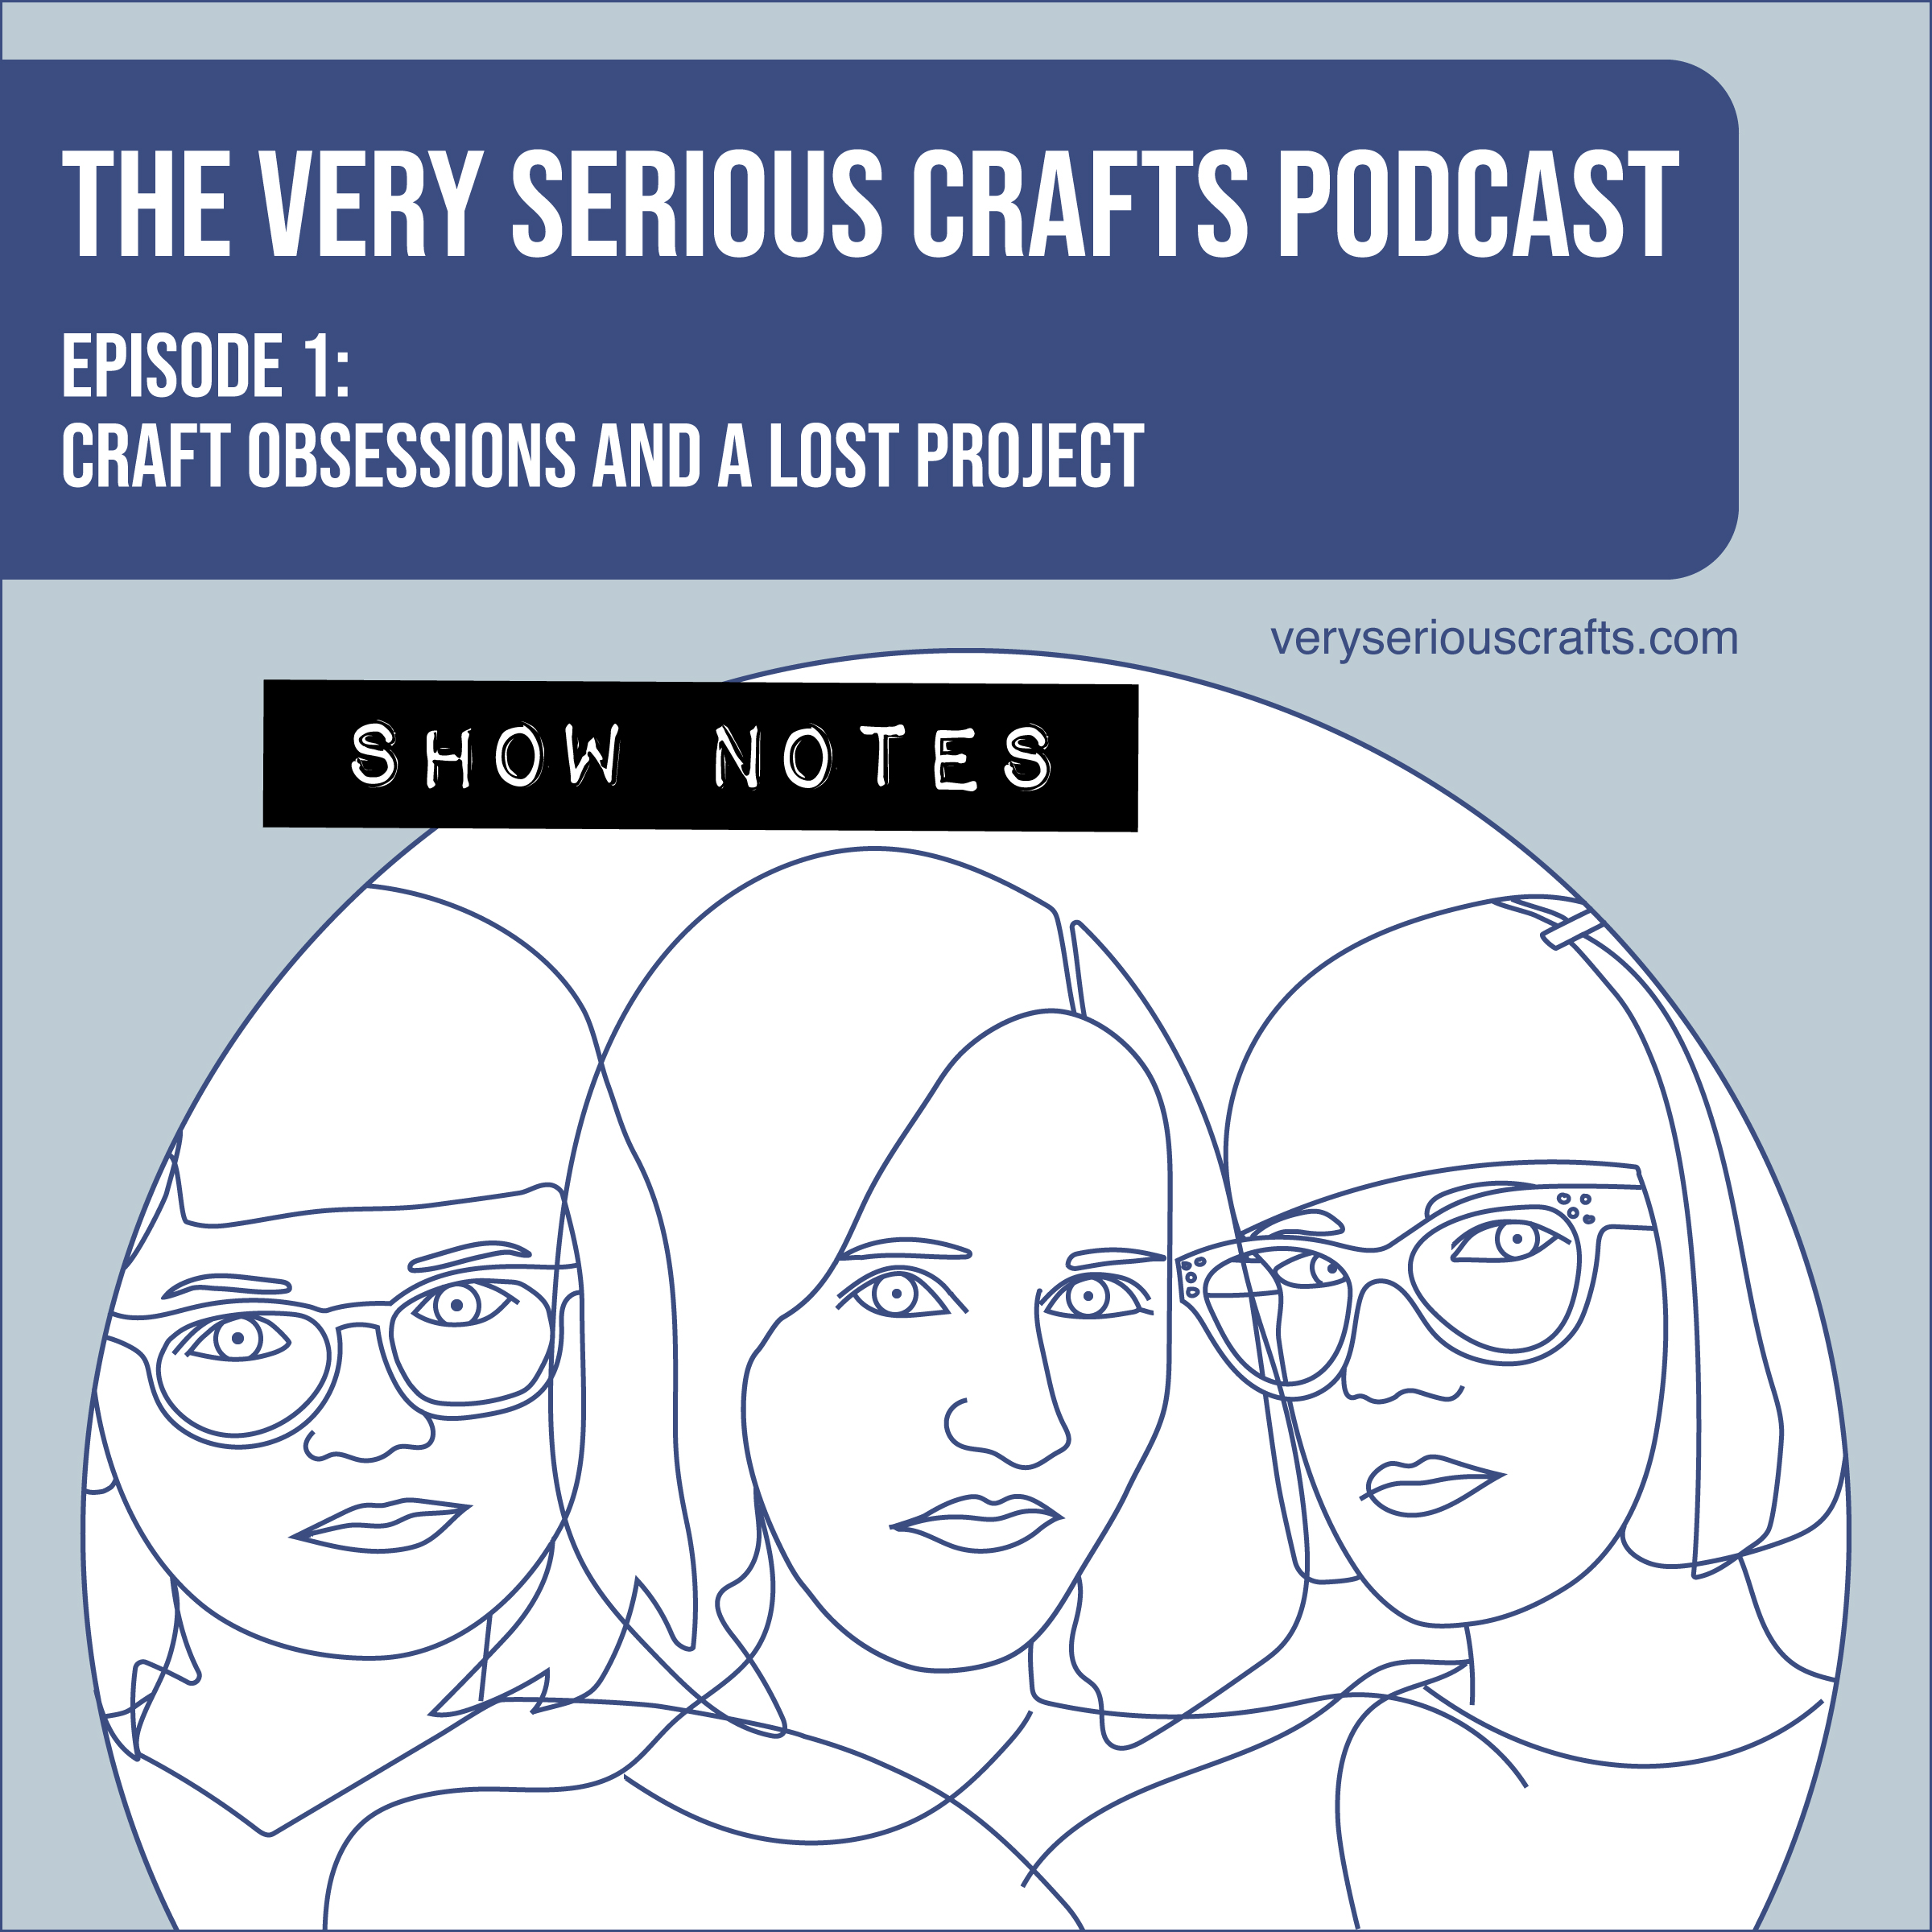 The Very Serious Crafts Podcast, Episode 1: Show Notes